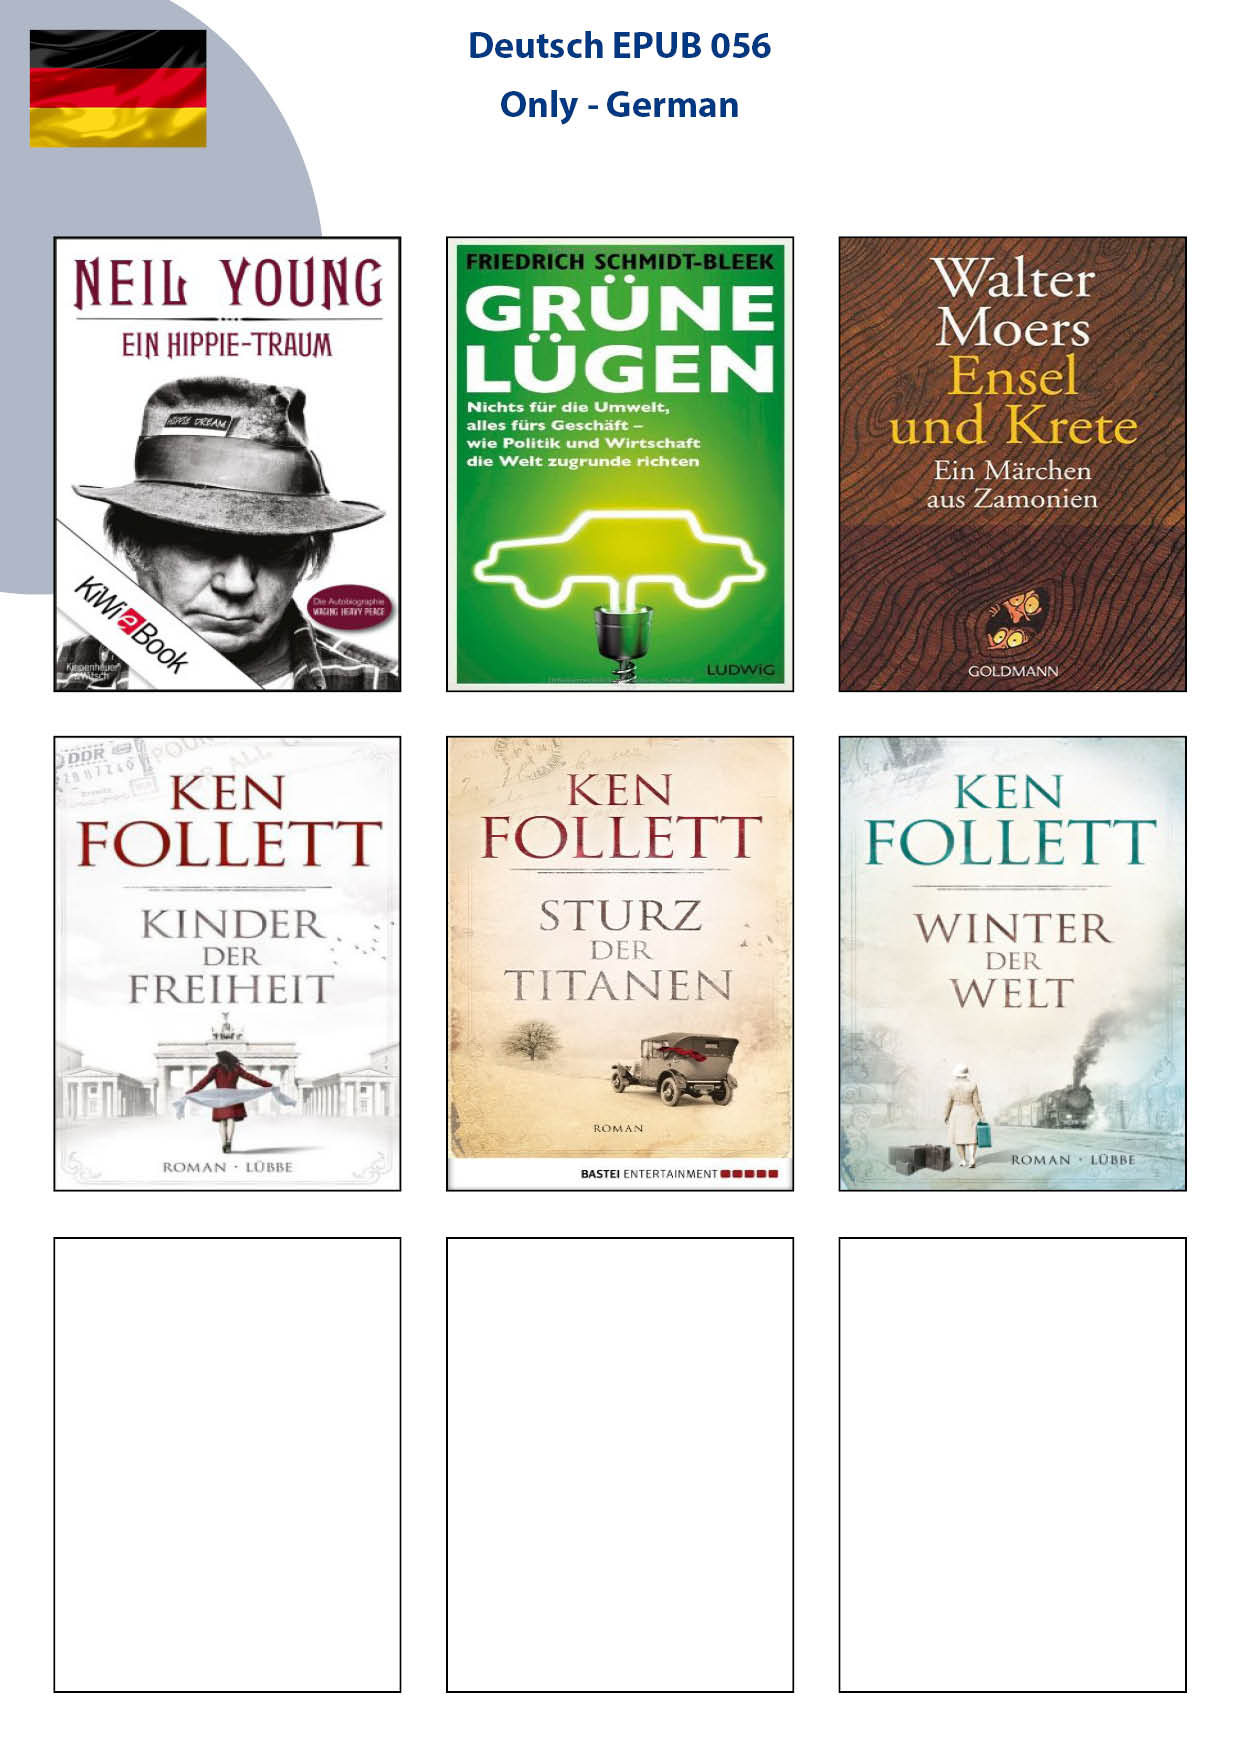 Ebook winter ken welt follett der